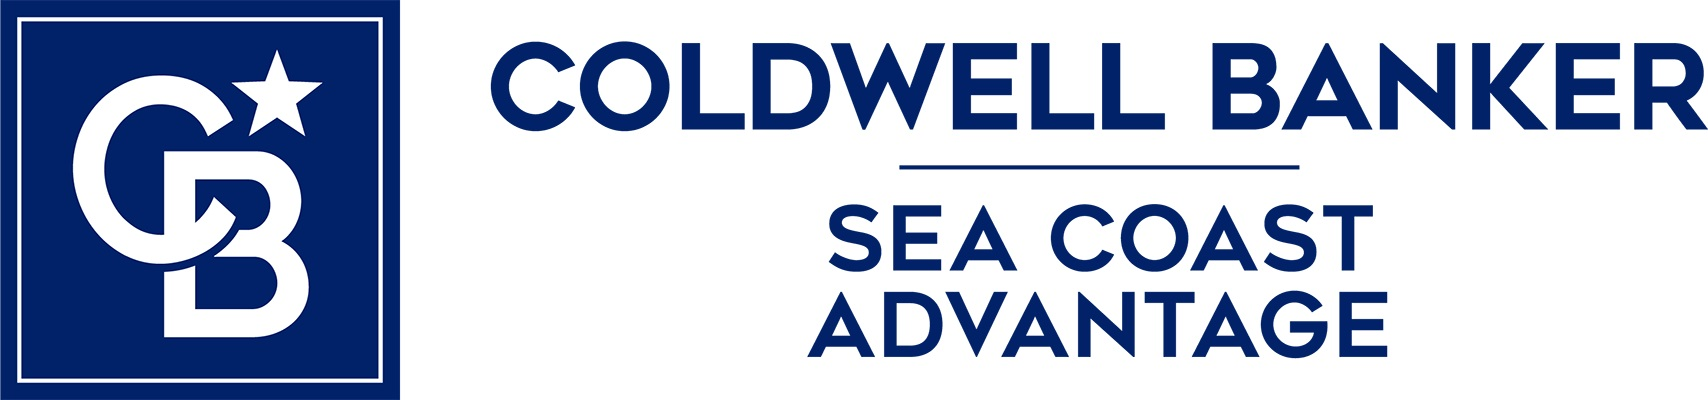 Pamela Torres - Coldwell Banker Sea Coast Advantage